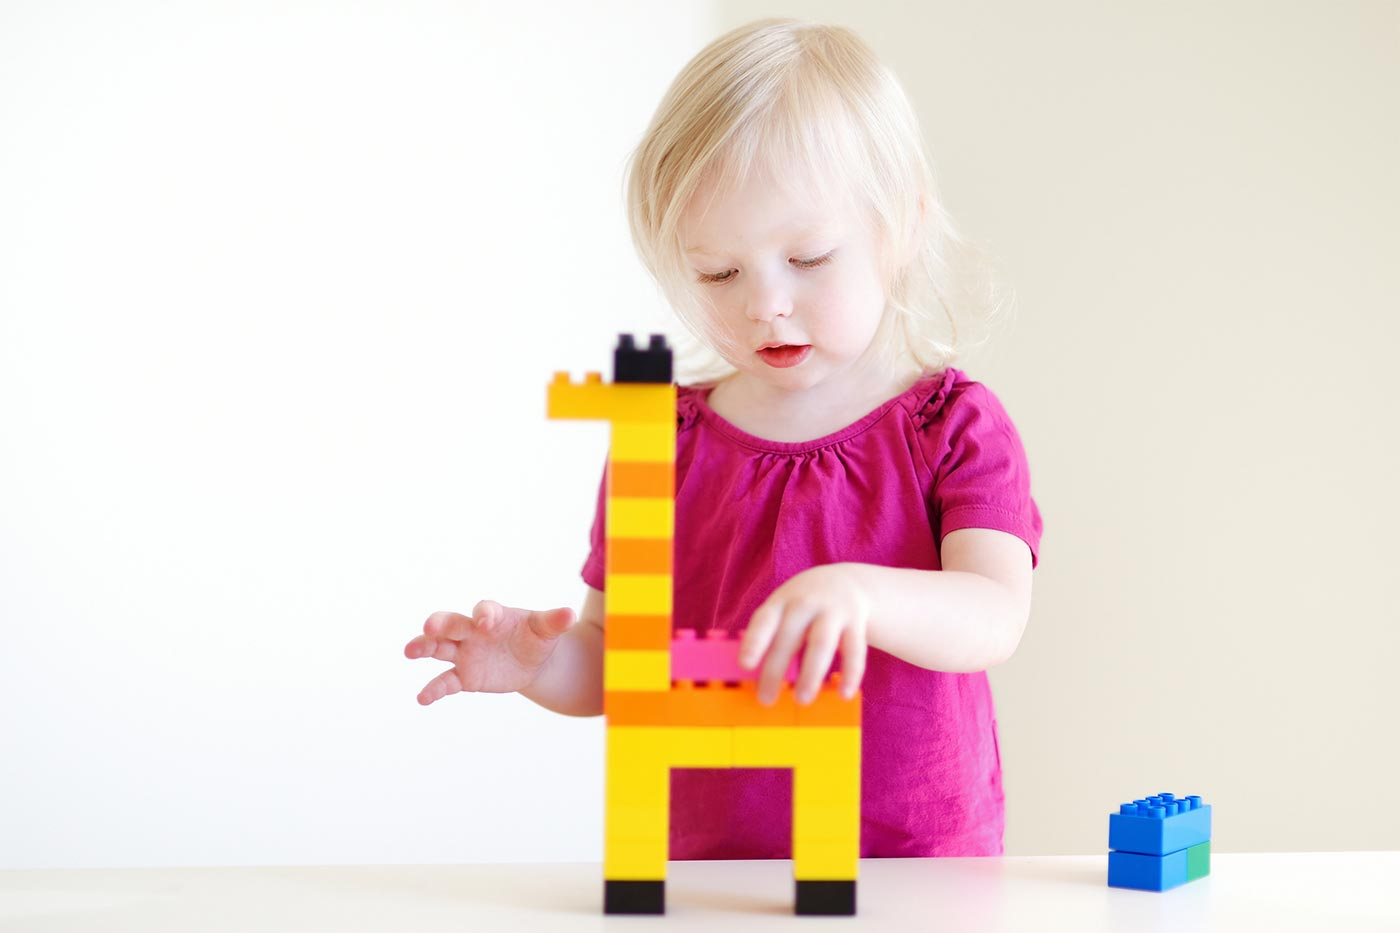 Little girl playing with Lego pieces